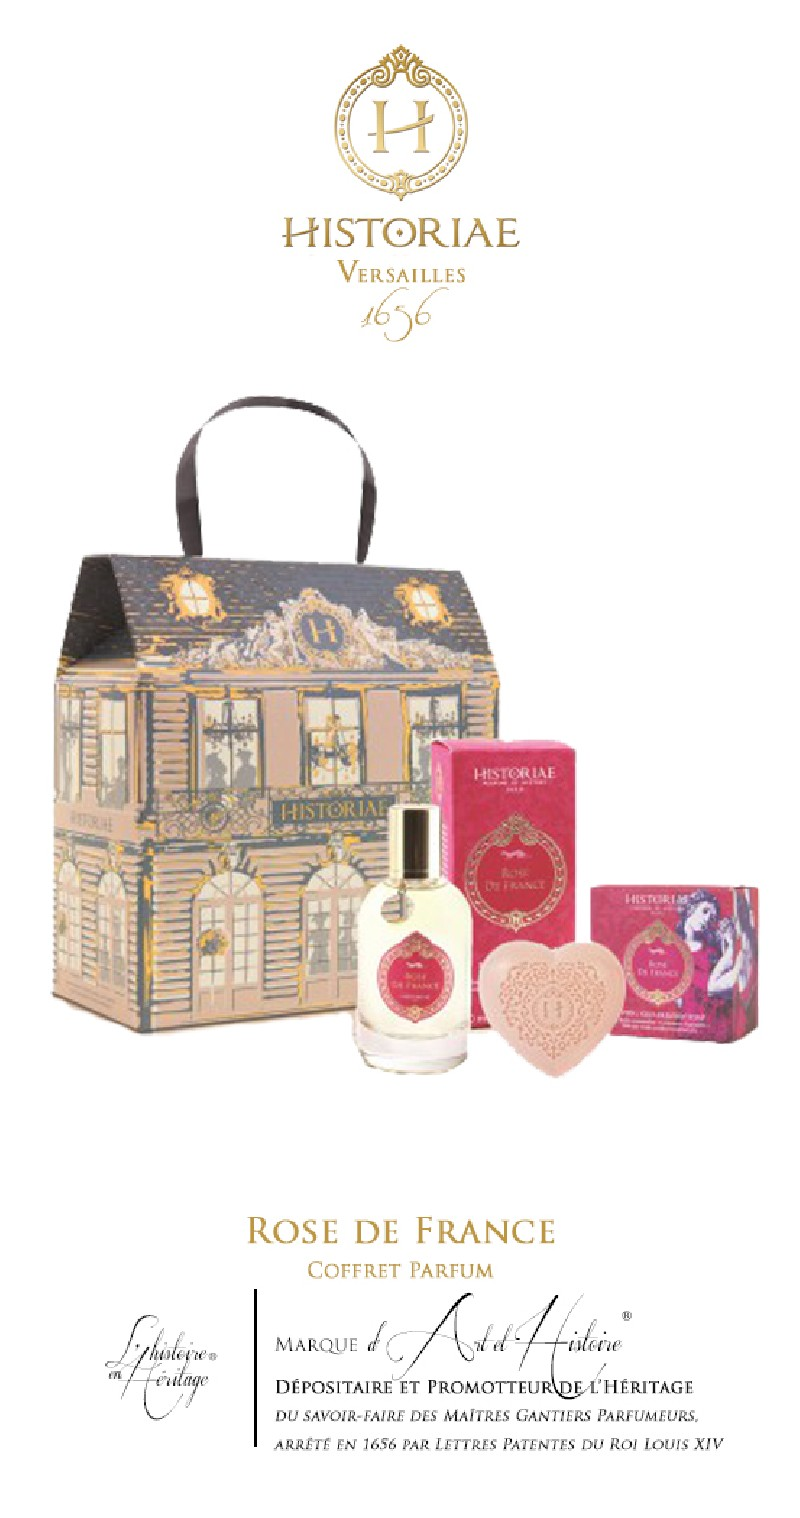 Rose de France - Coffret Parfum